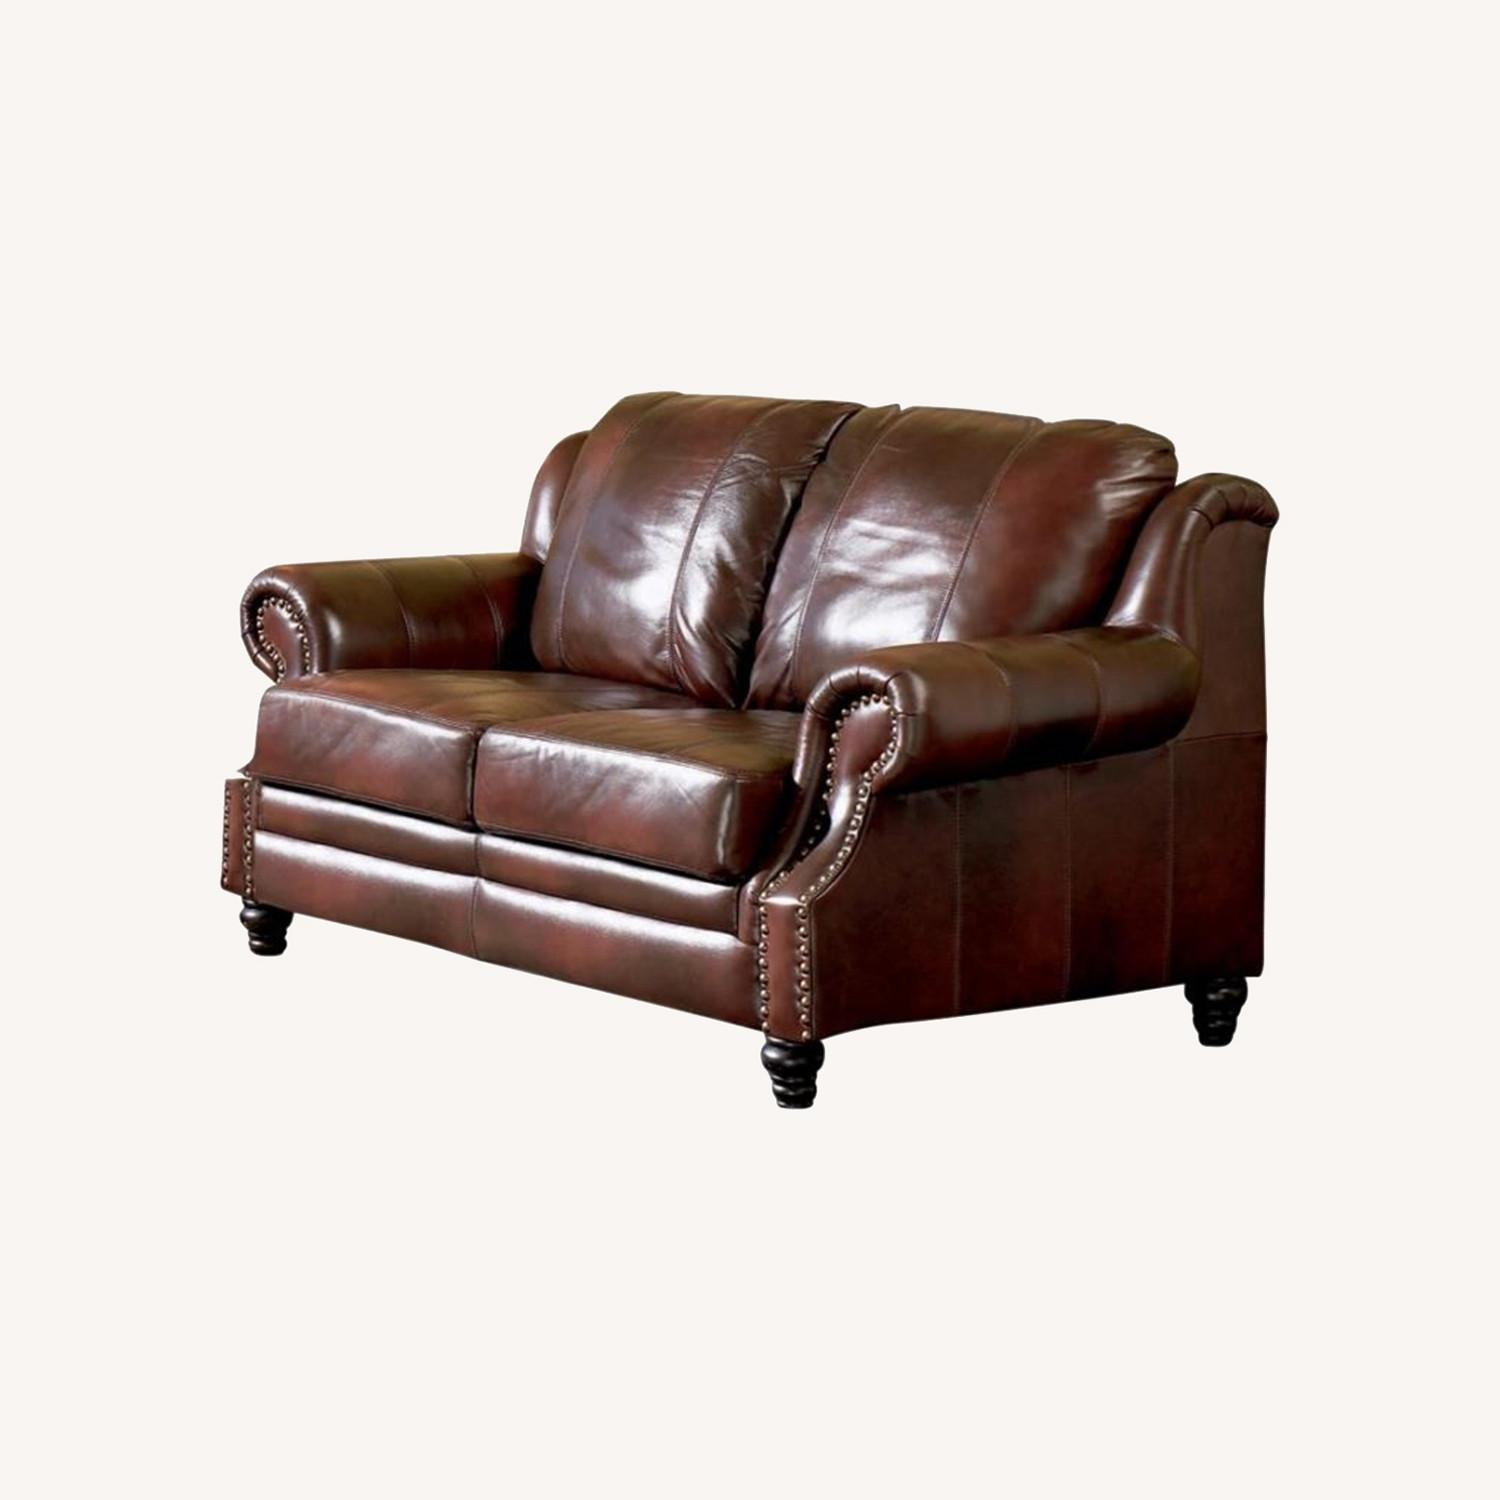 Loveseat In Burgundy Hand Rubbed Leather - image-5